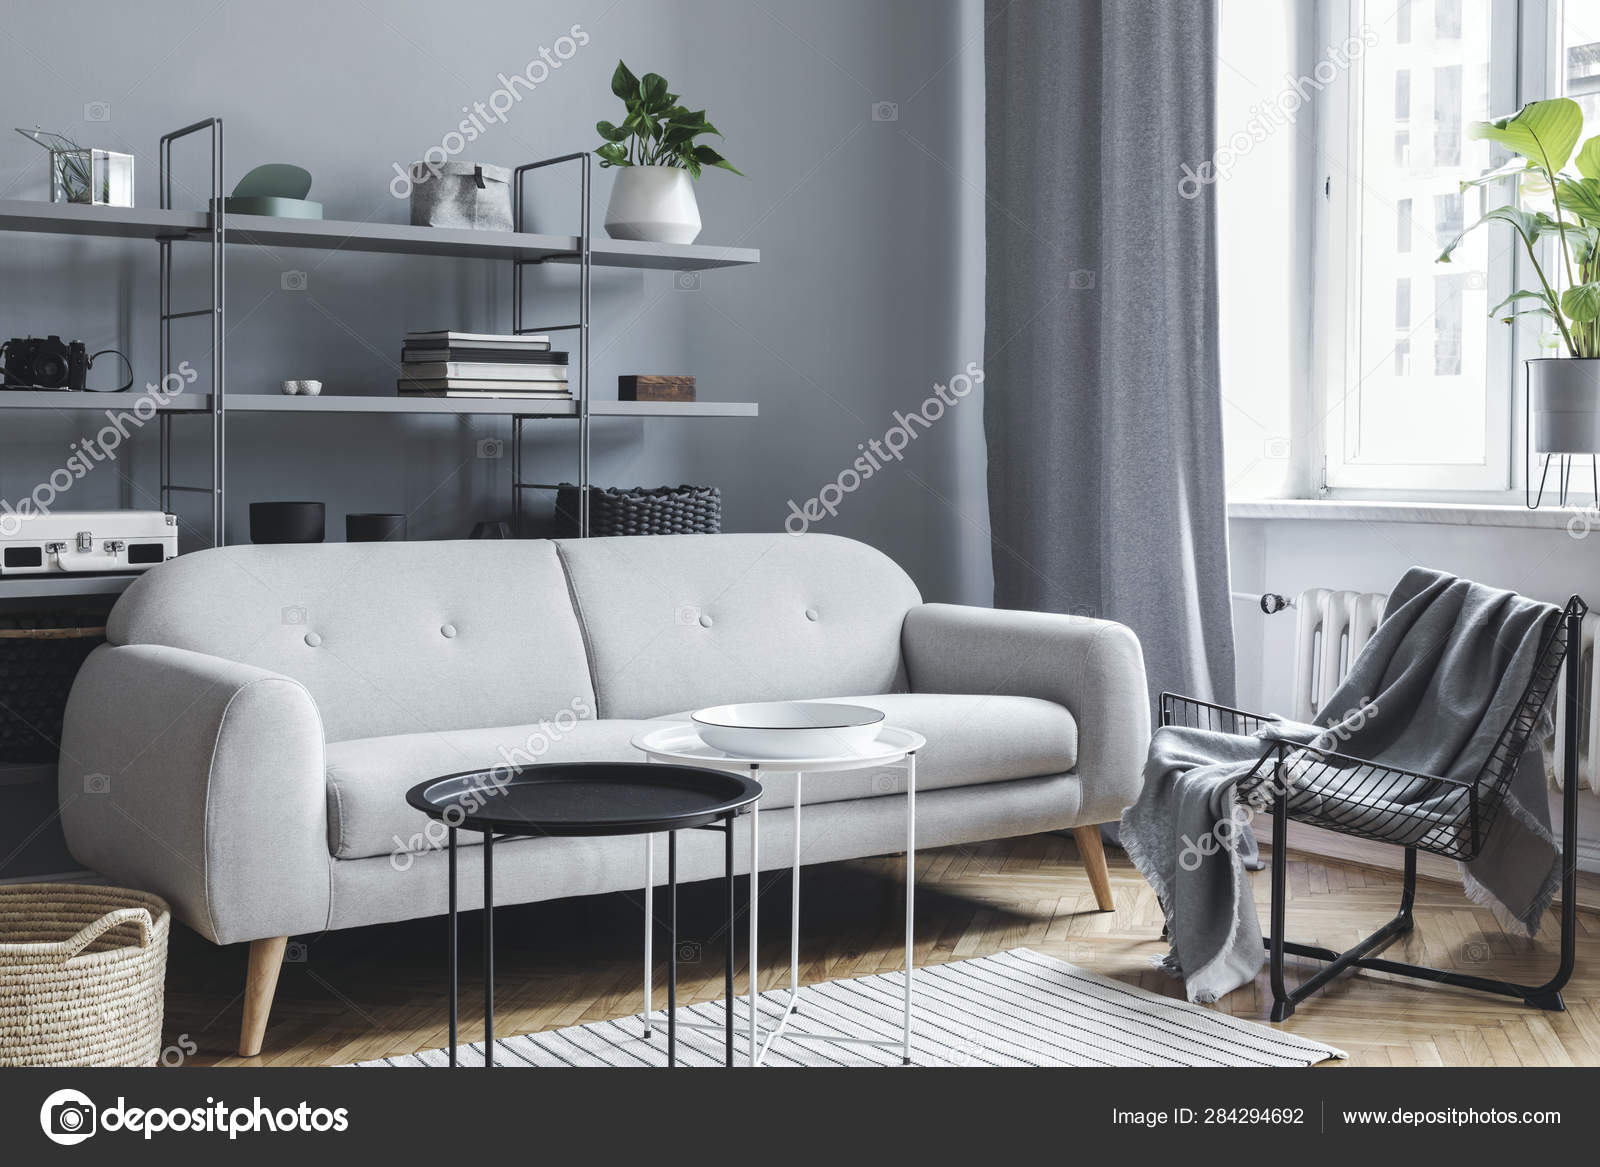 Modern Bright Nordic Living Room Design Sofa Pillow Coffee Table Stock Photo Image By C Followtheflow 284294692